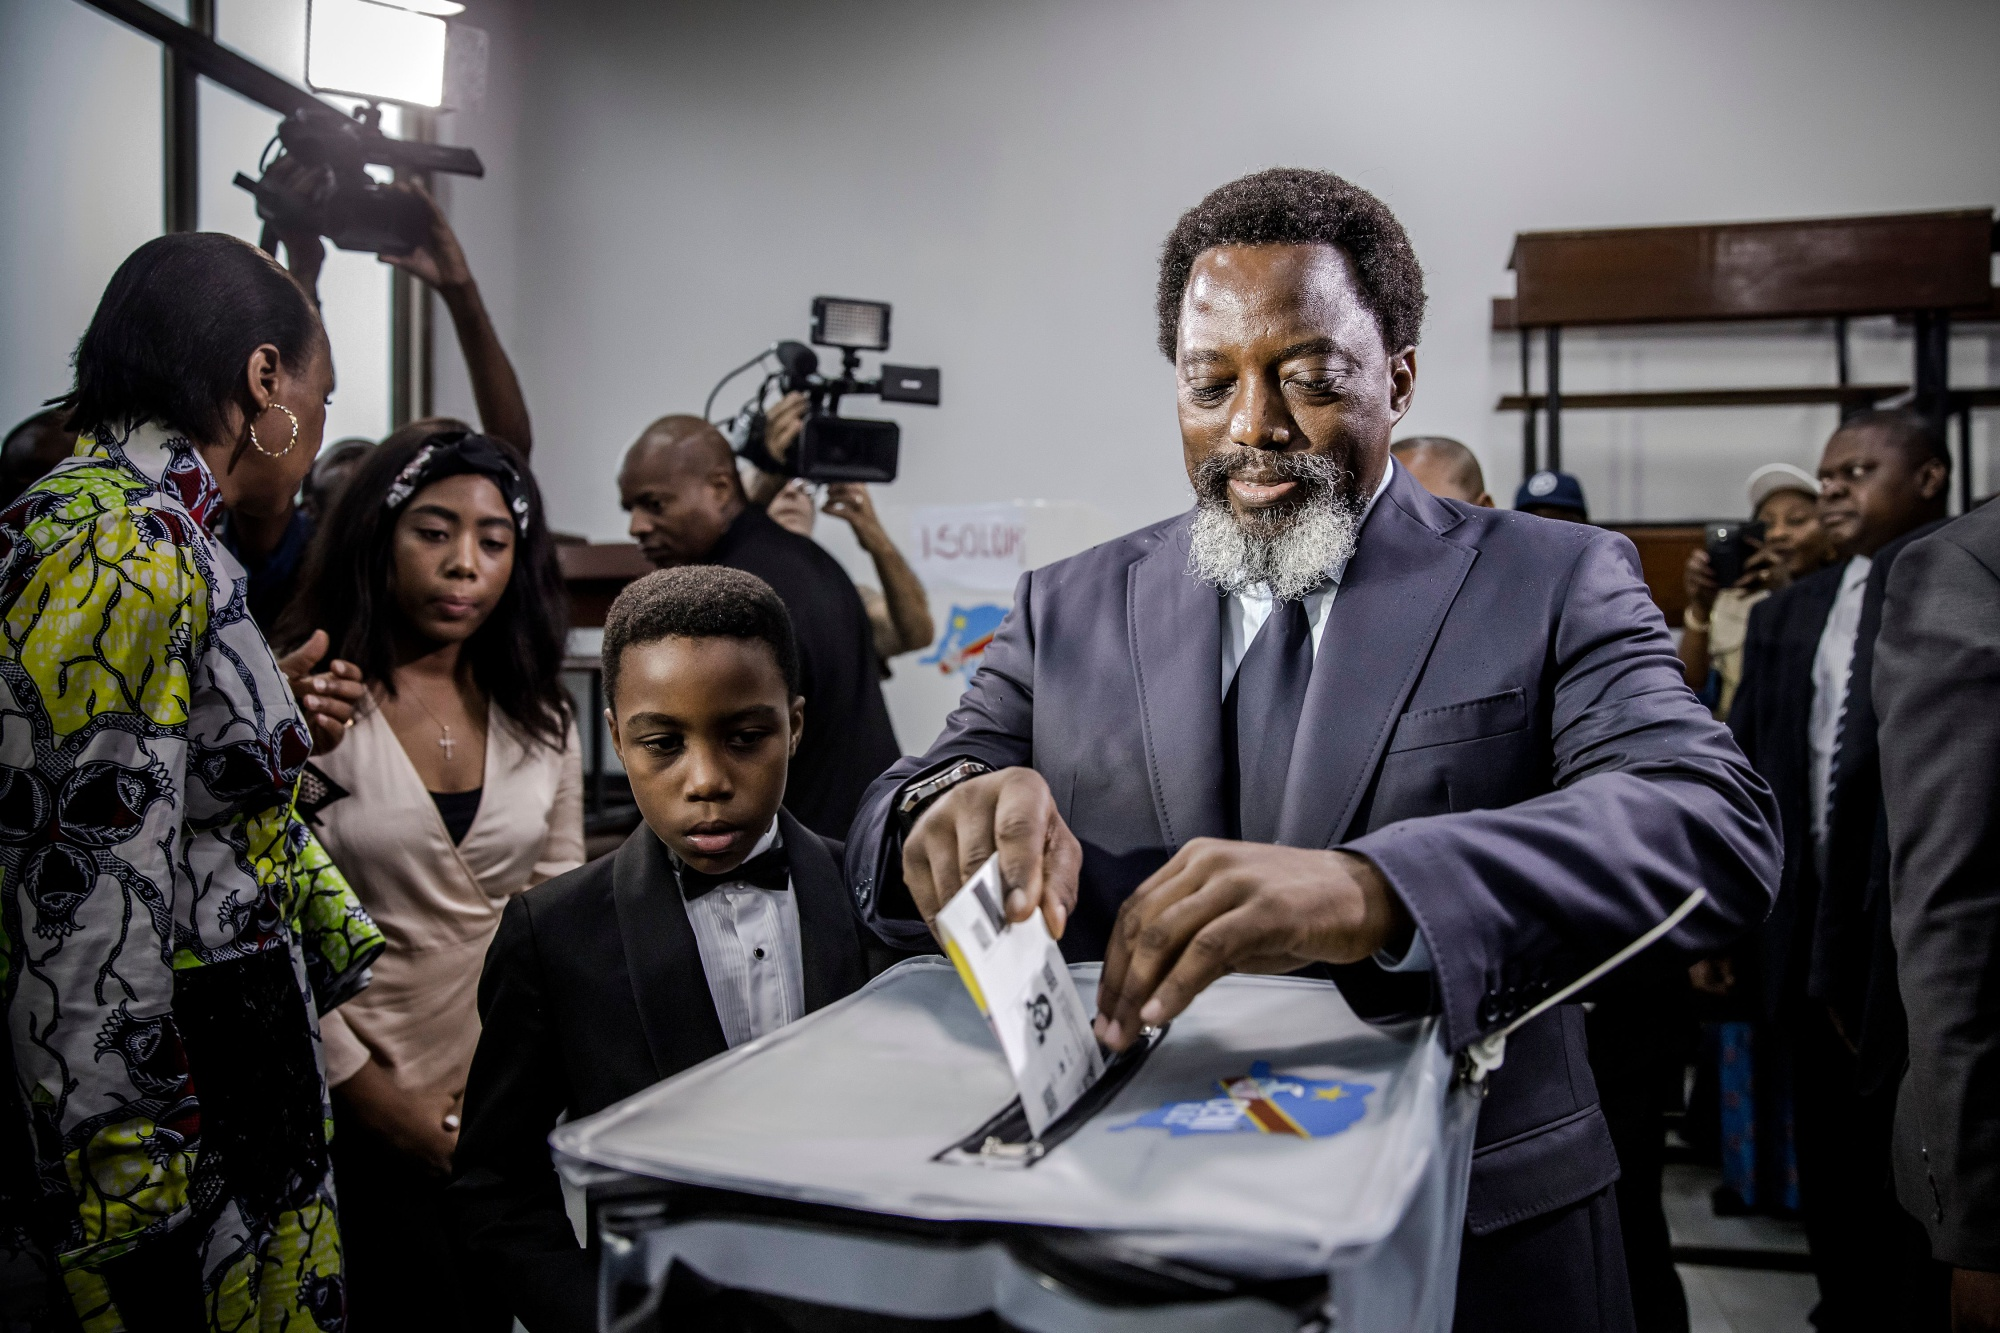 Joseph Kabila casts his vote on Dec. 30 Photographer: Luis Tato/AFP via Getty Images